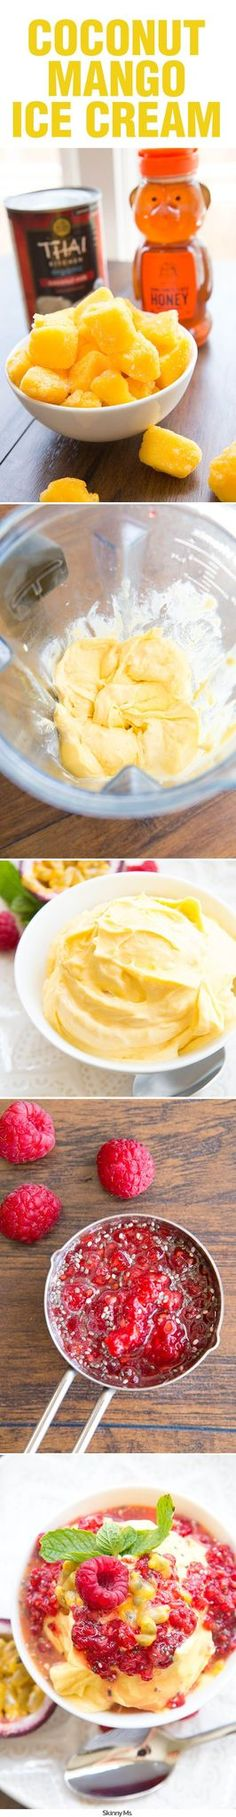 We all scream for 3-Ingredient Coconut Ice Cream!